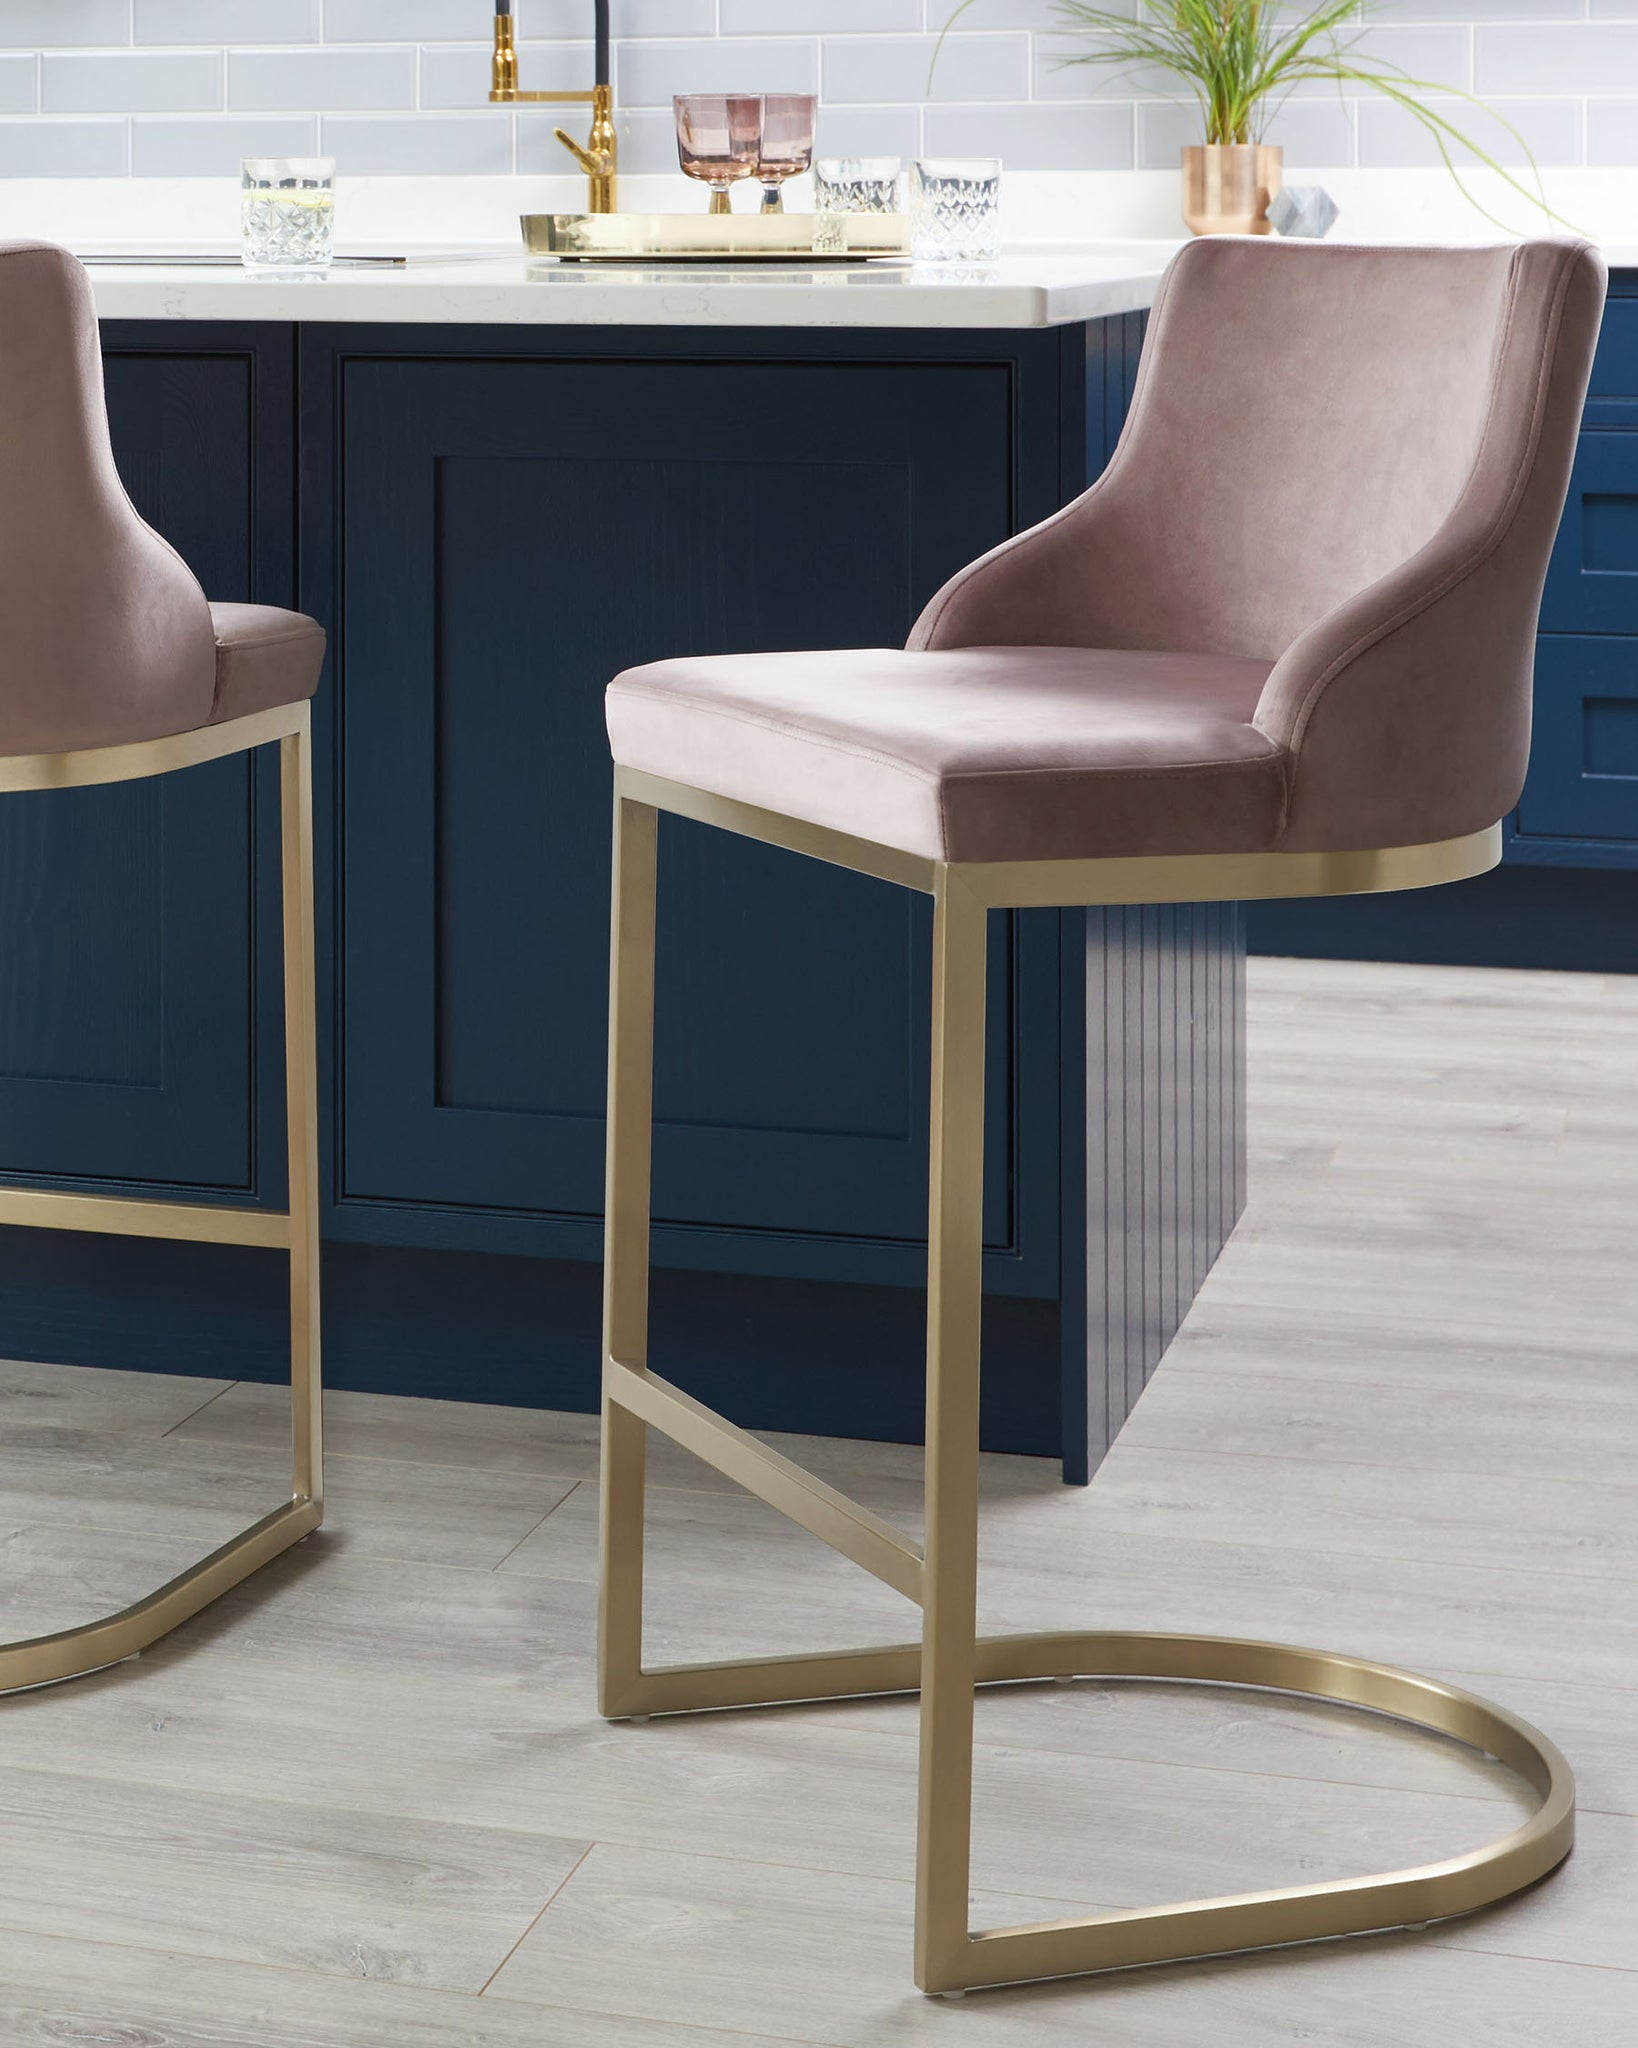 Form Blush Pink Velvet & Brass Bar Stool With Backrest - Set Of 2